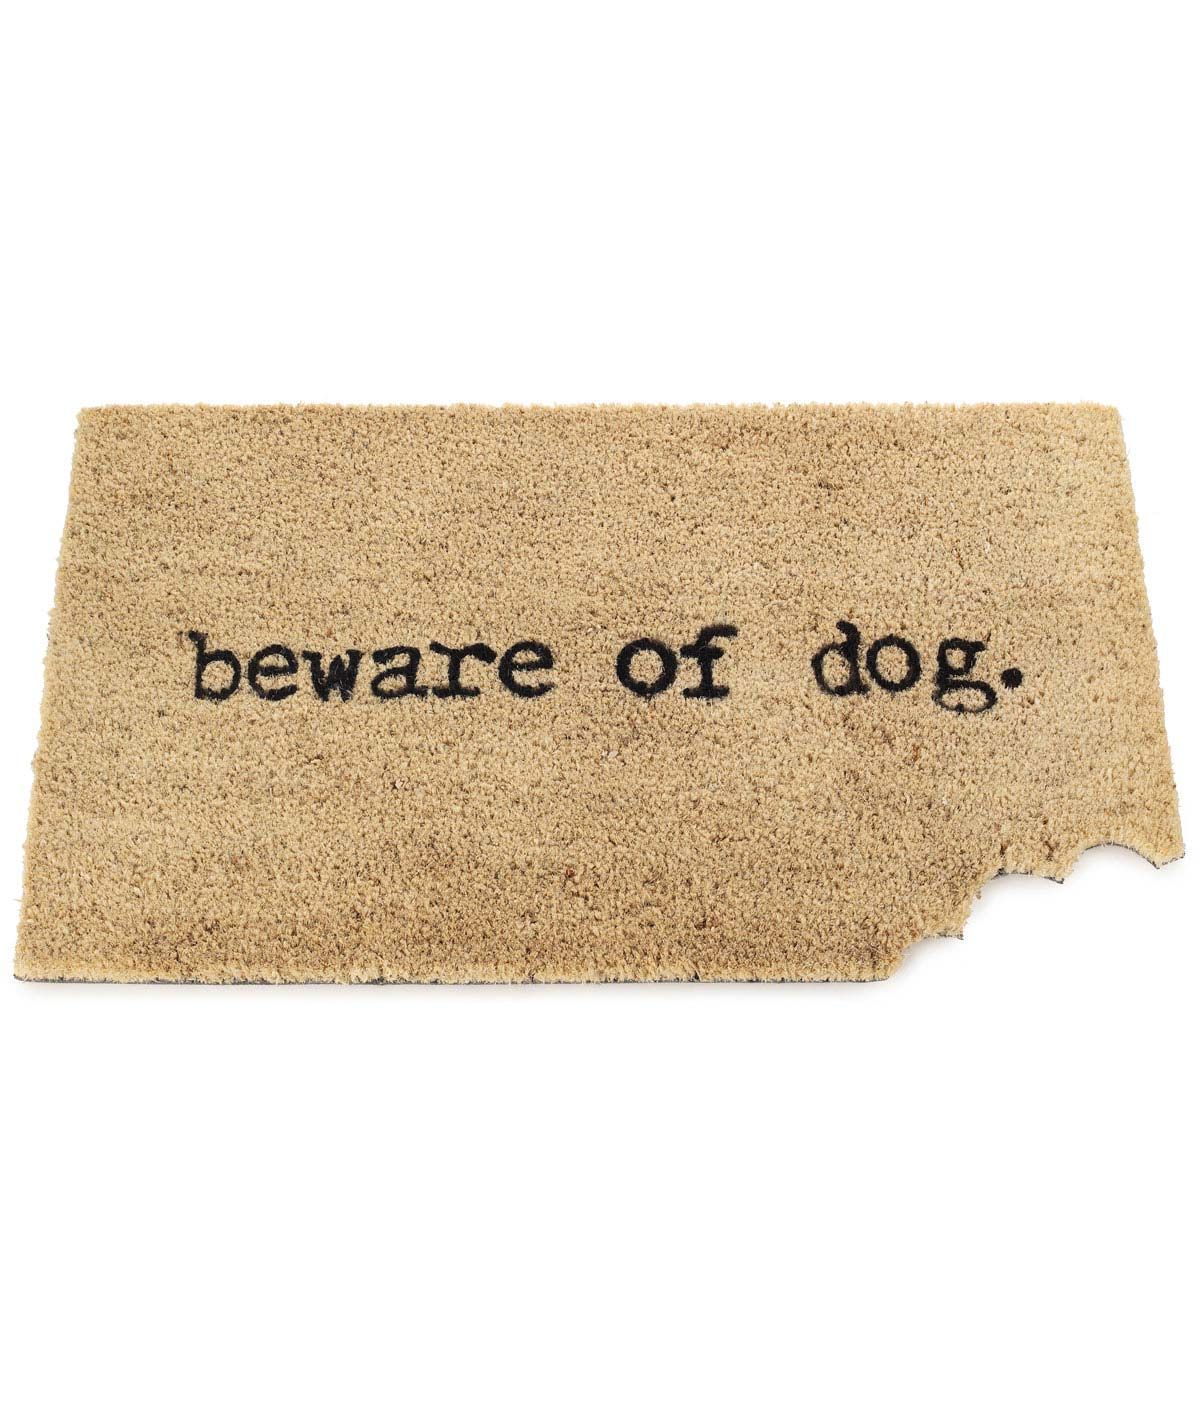 Beware Of Dog Mat | Coir, Doormat and Dog